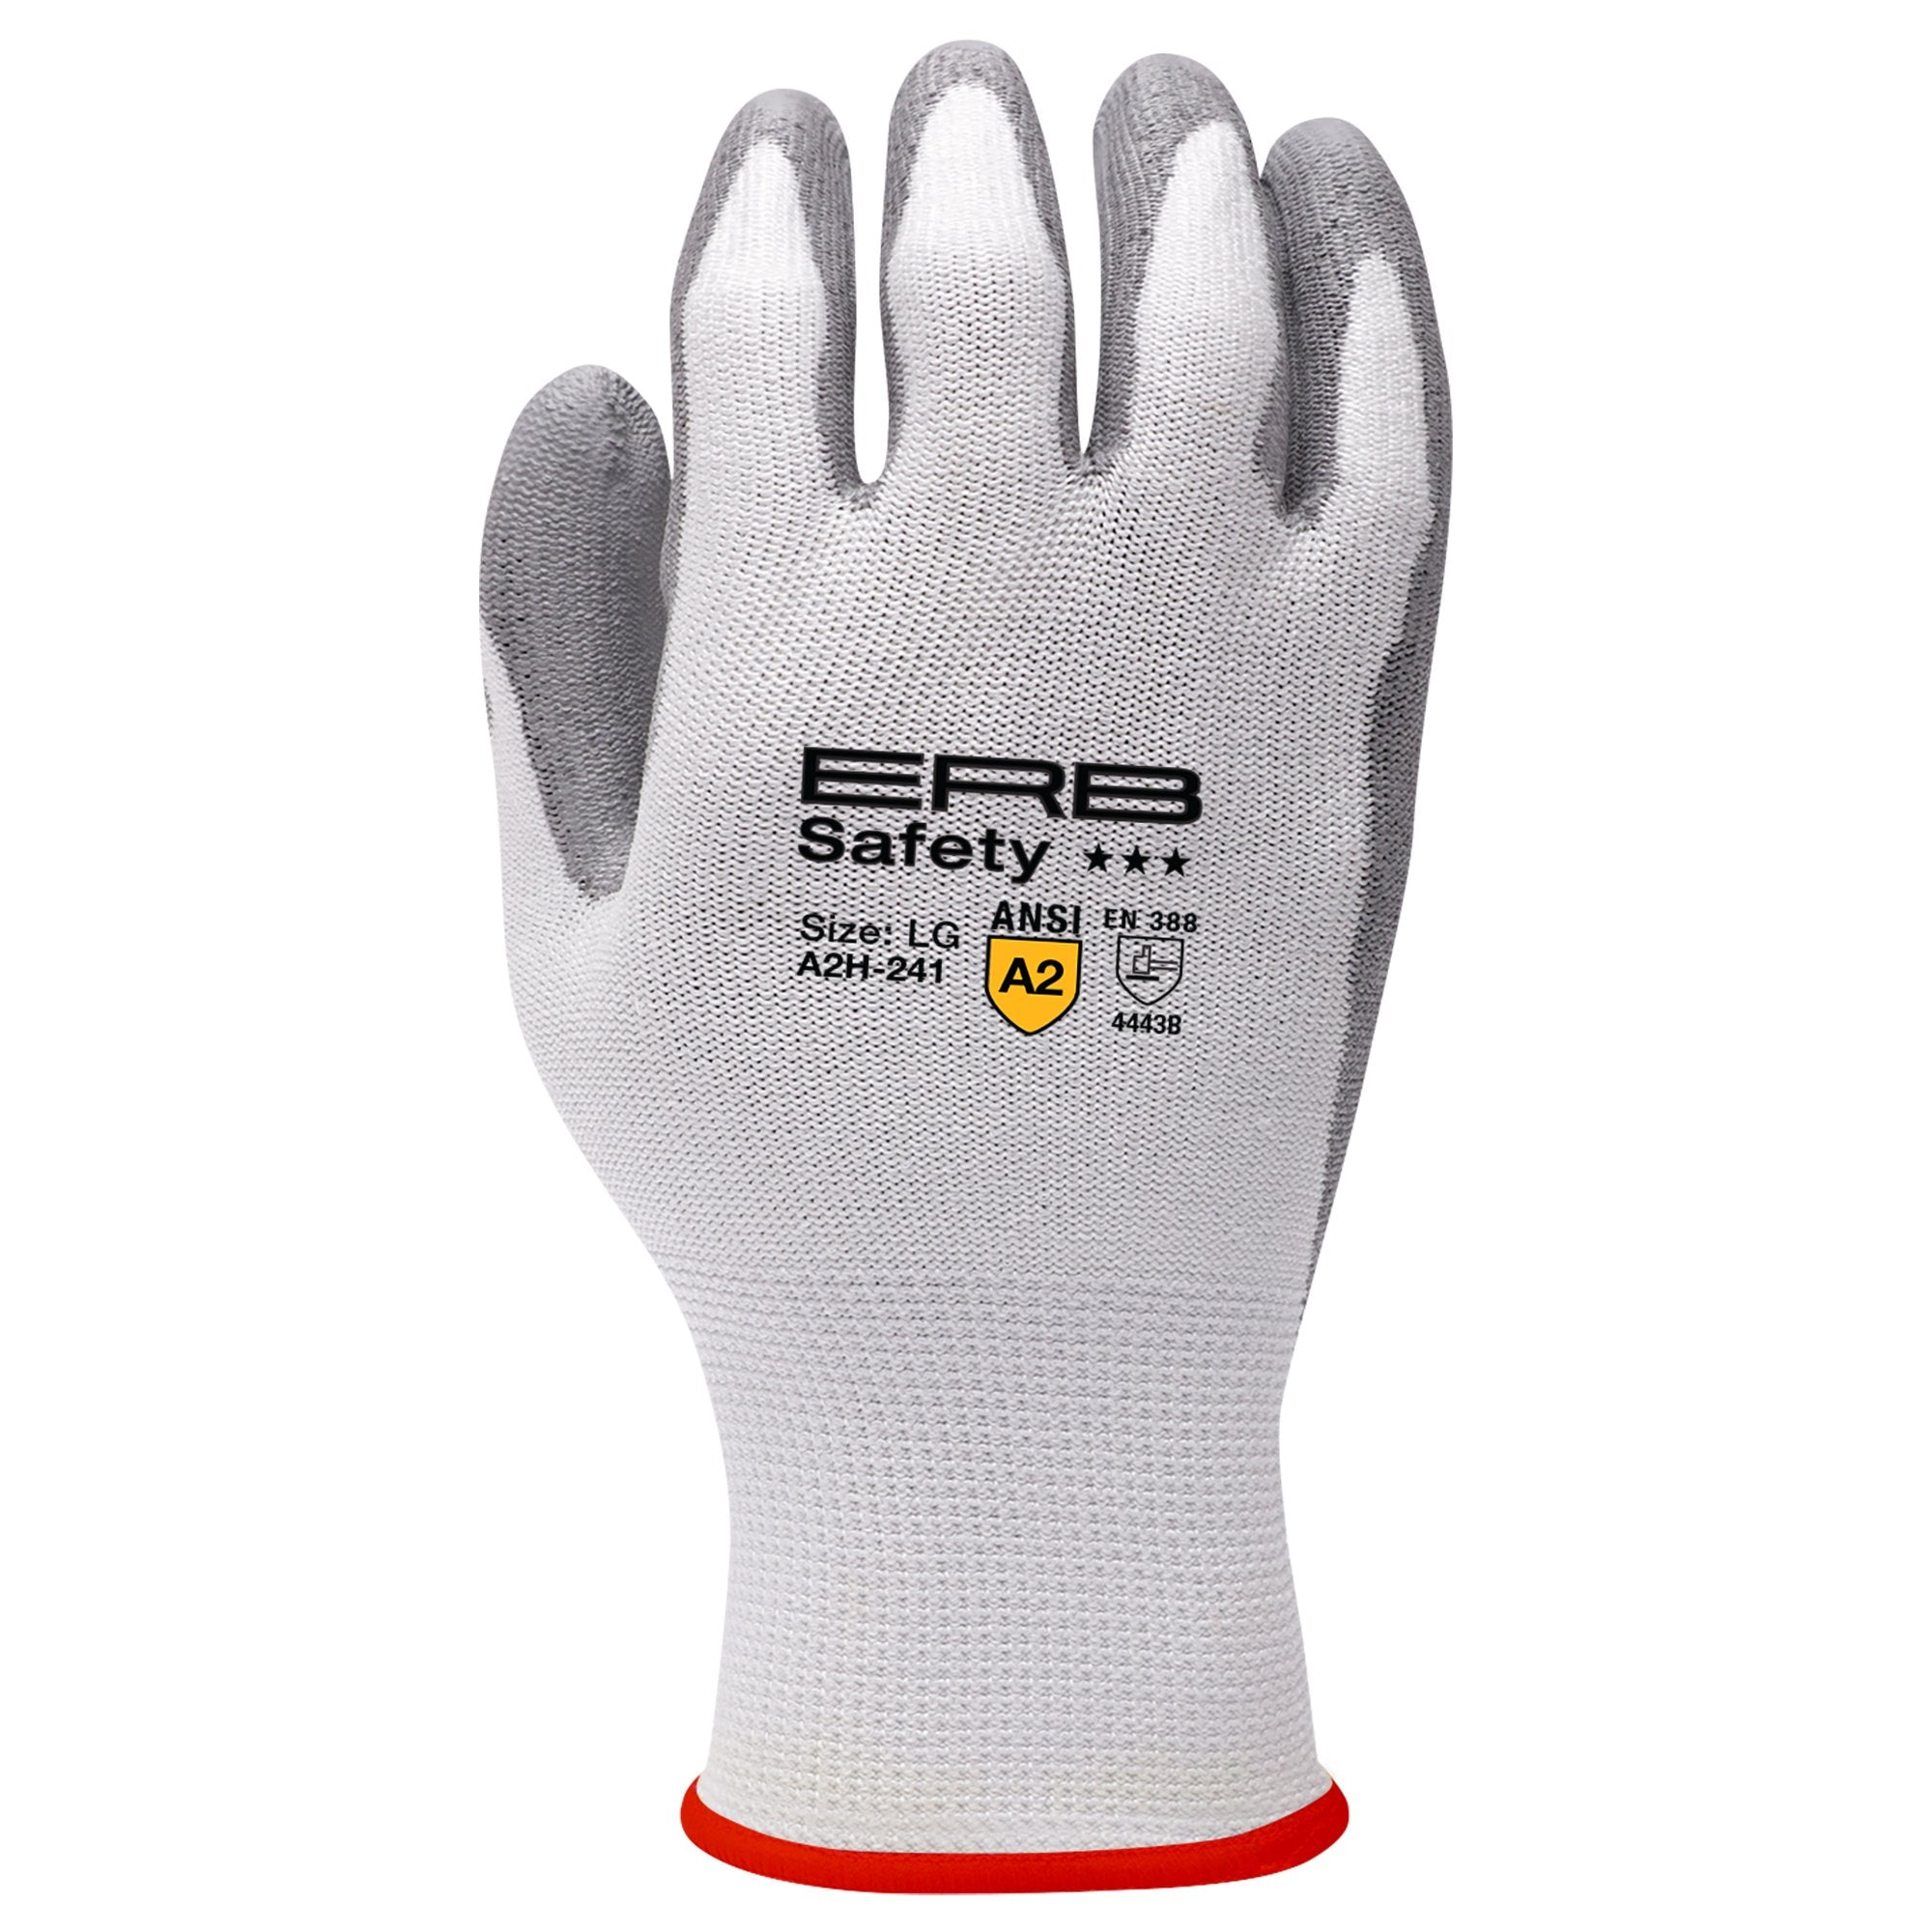 A2H-241 HPPE Cut Glove with PU Coating 1pair